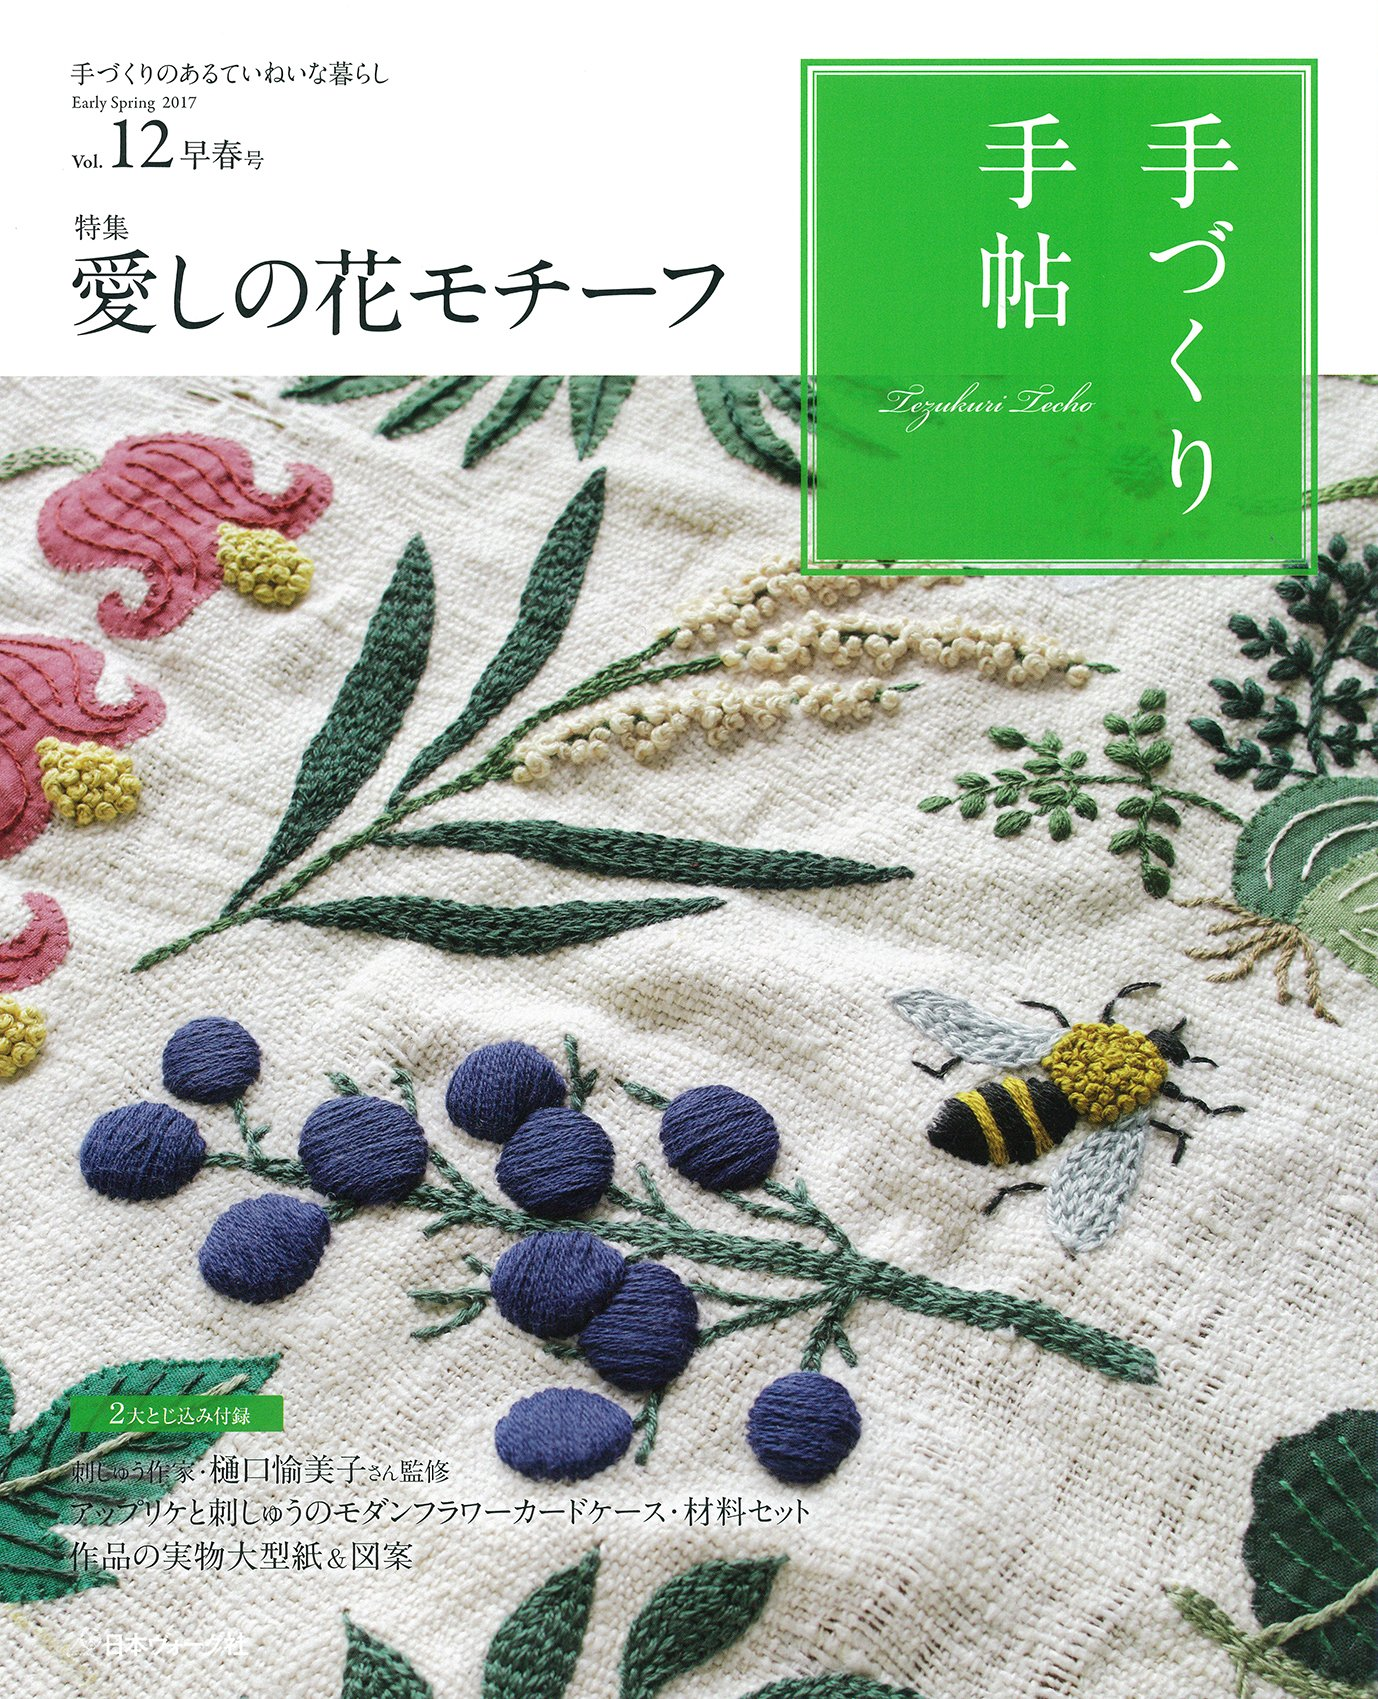 Handmade Techo Vol.12 early spring